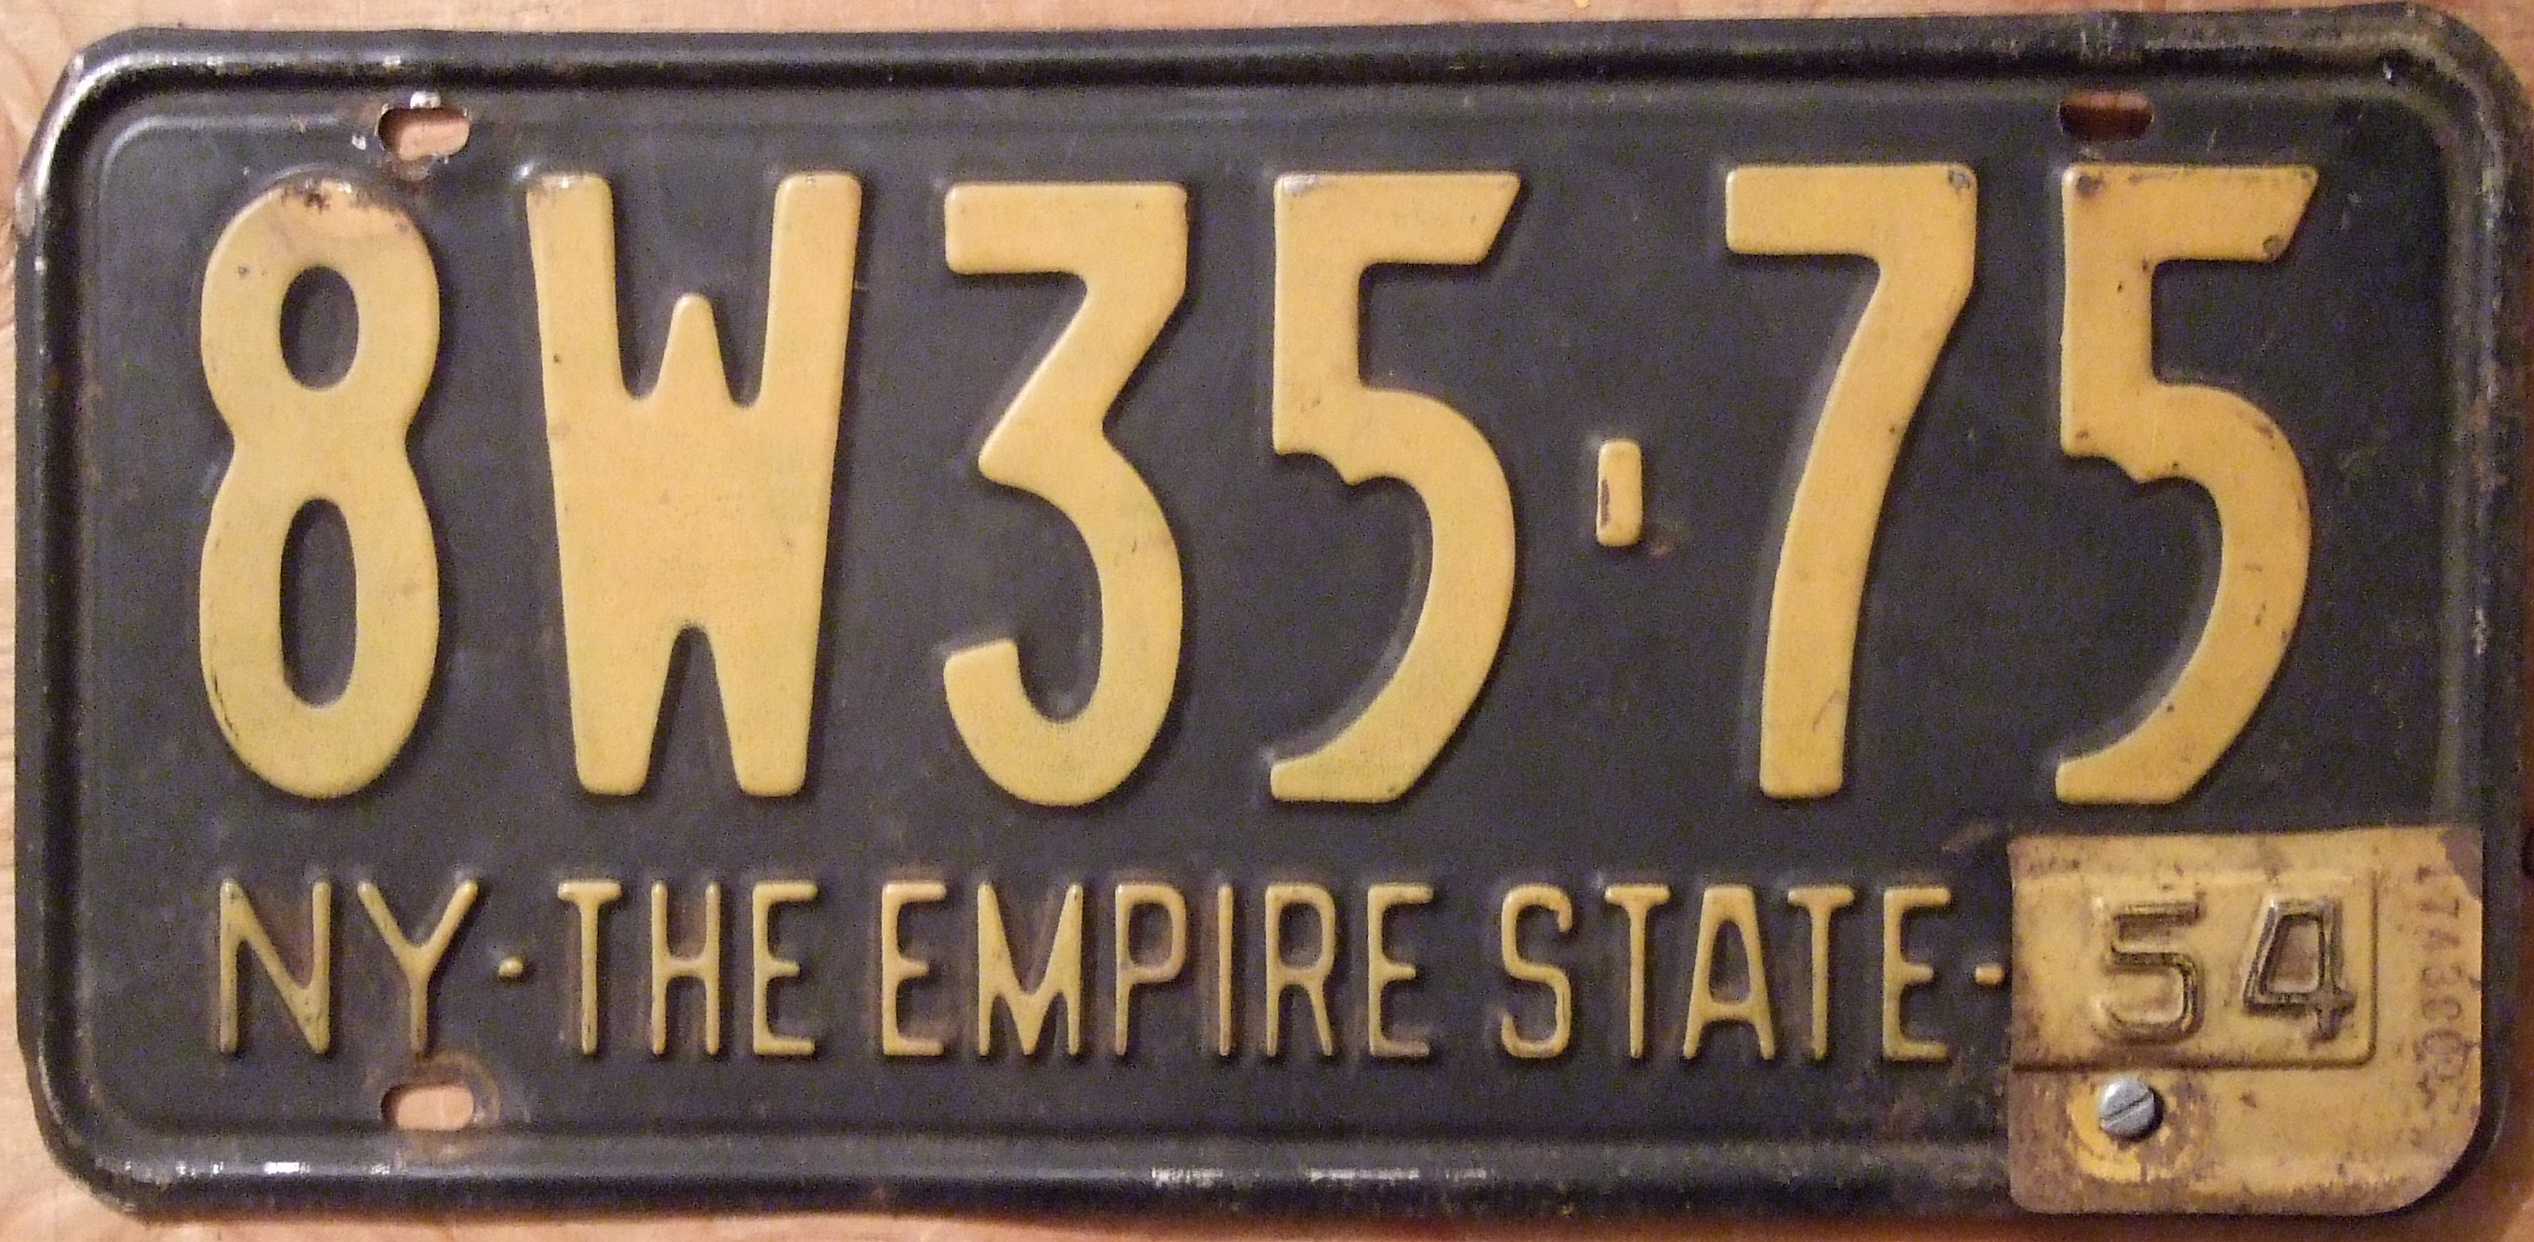 File:NEW YORK 1954 LICENSE PLATE, 1953 plate with \